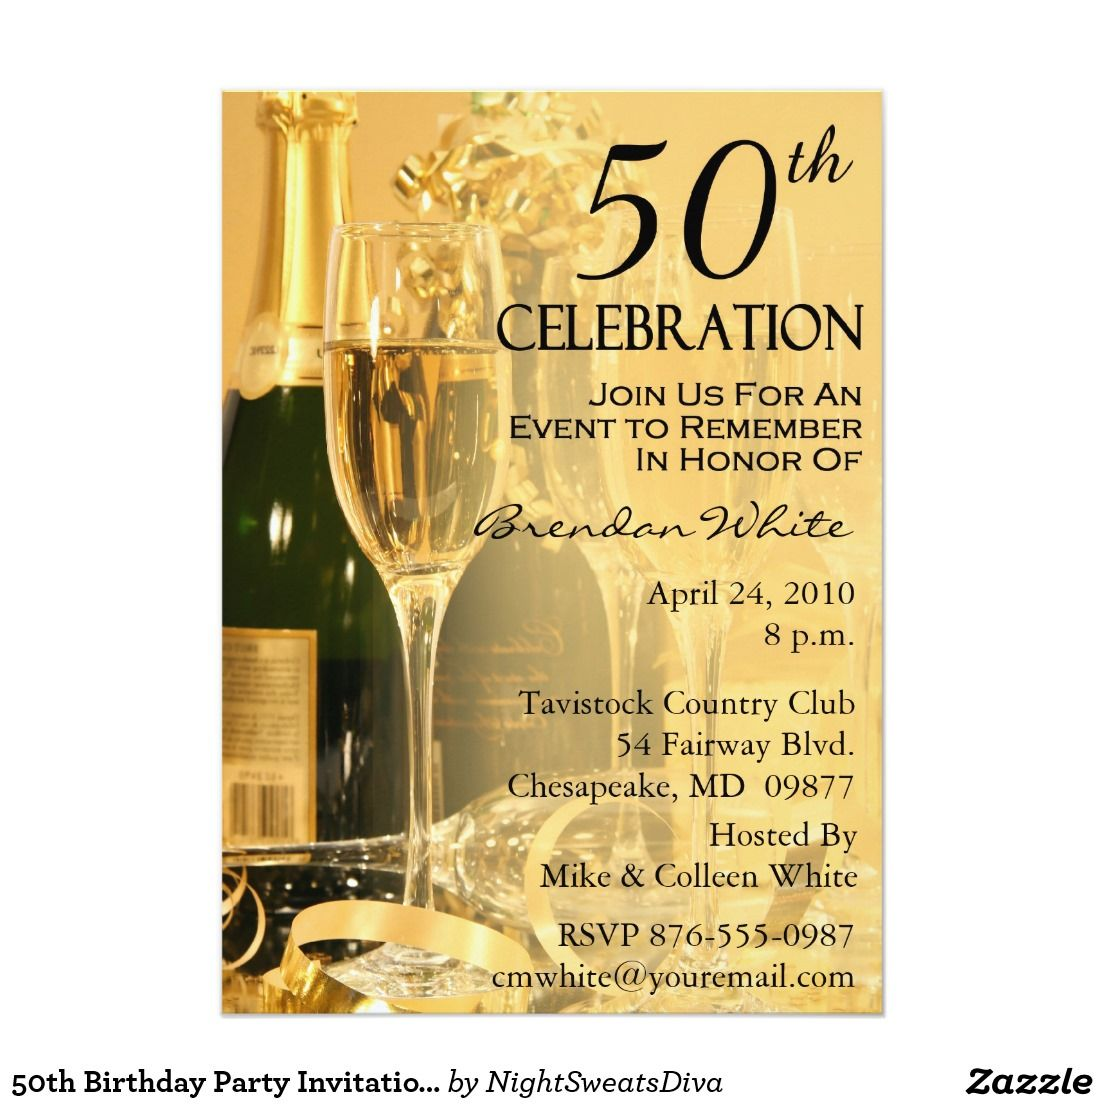 50th birthday party invitations 50th birthday party invitations 50th birthday party invitations filmwisefo